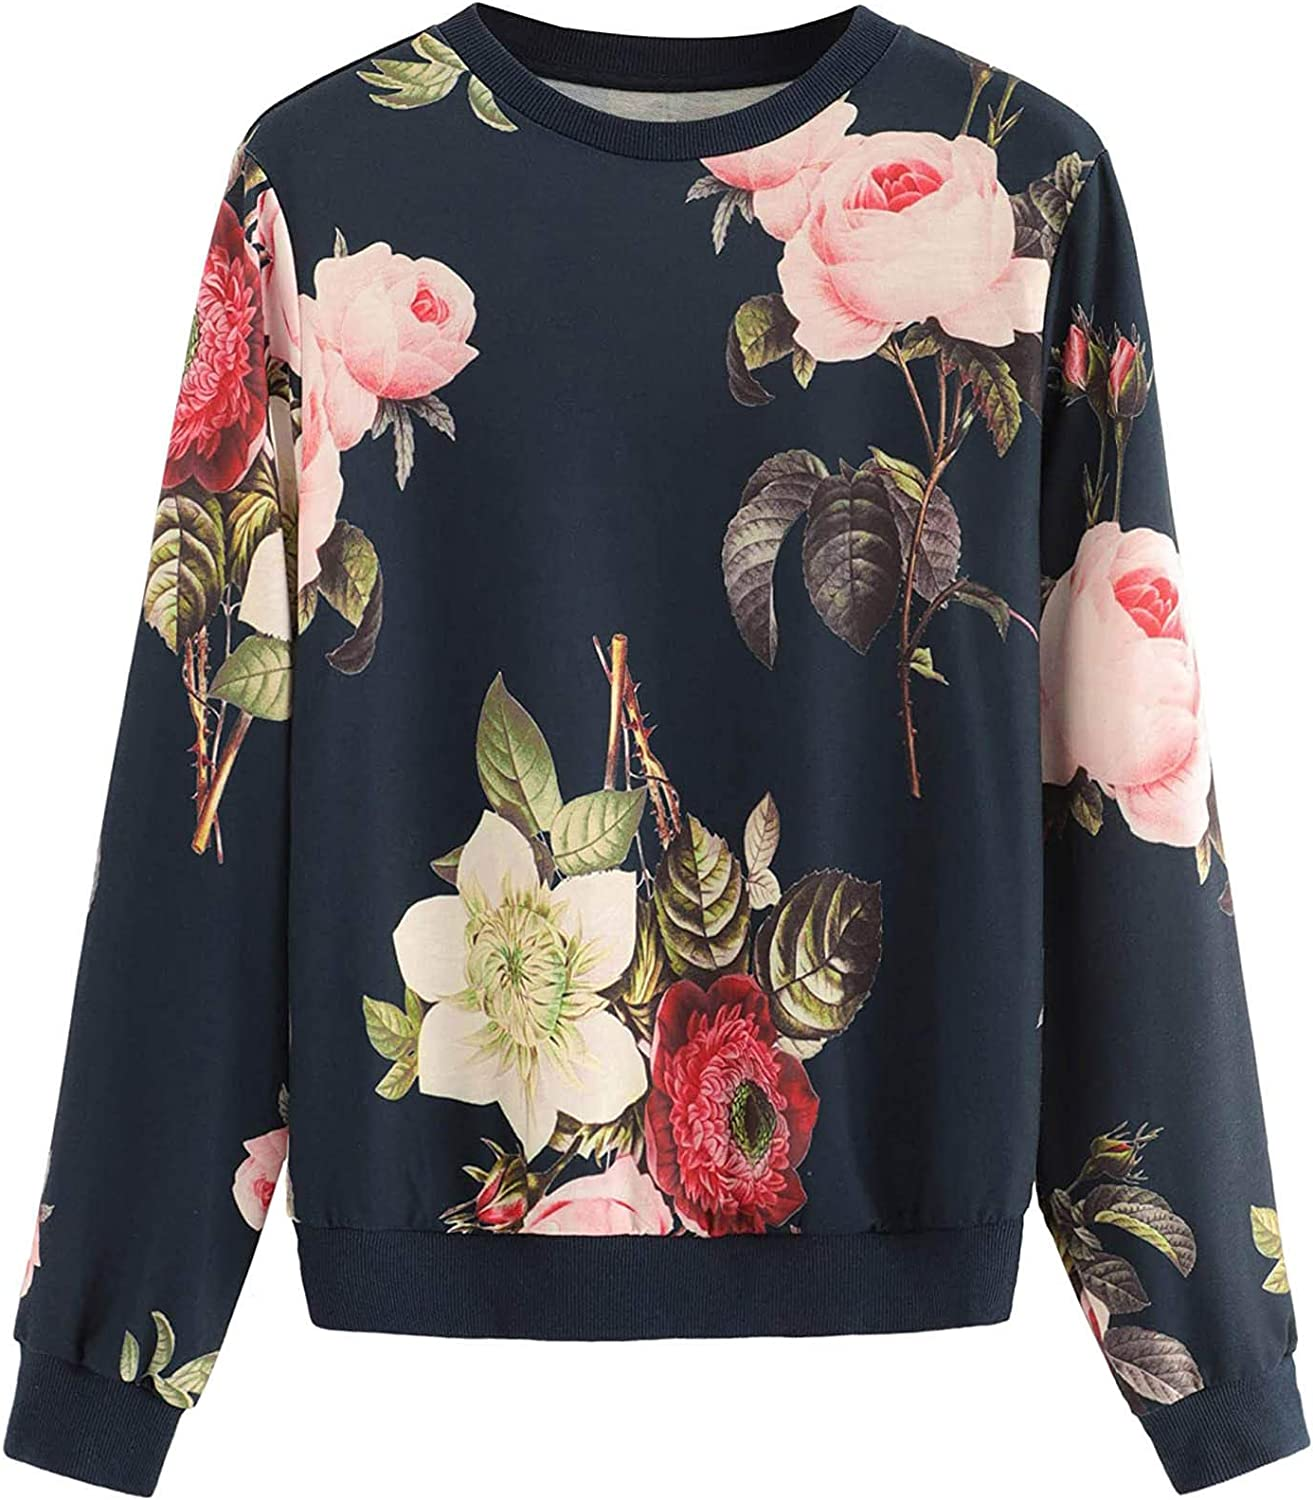 SSZZoo Women's Sweater Shirt Floral Printed O-Neck Long Sleeve Loose Top Blouse